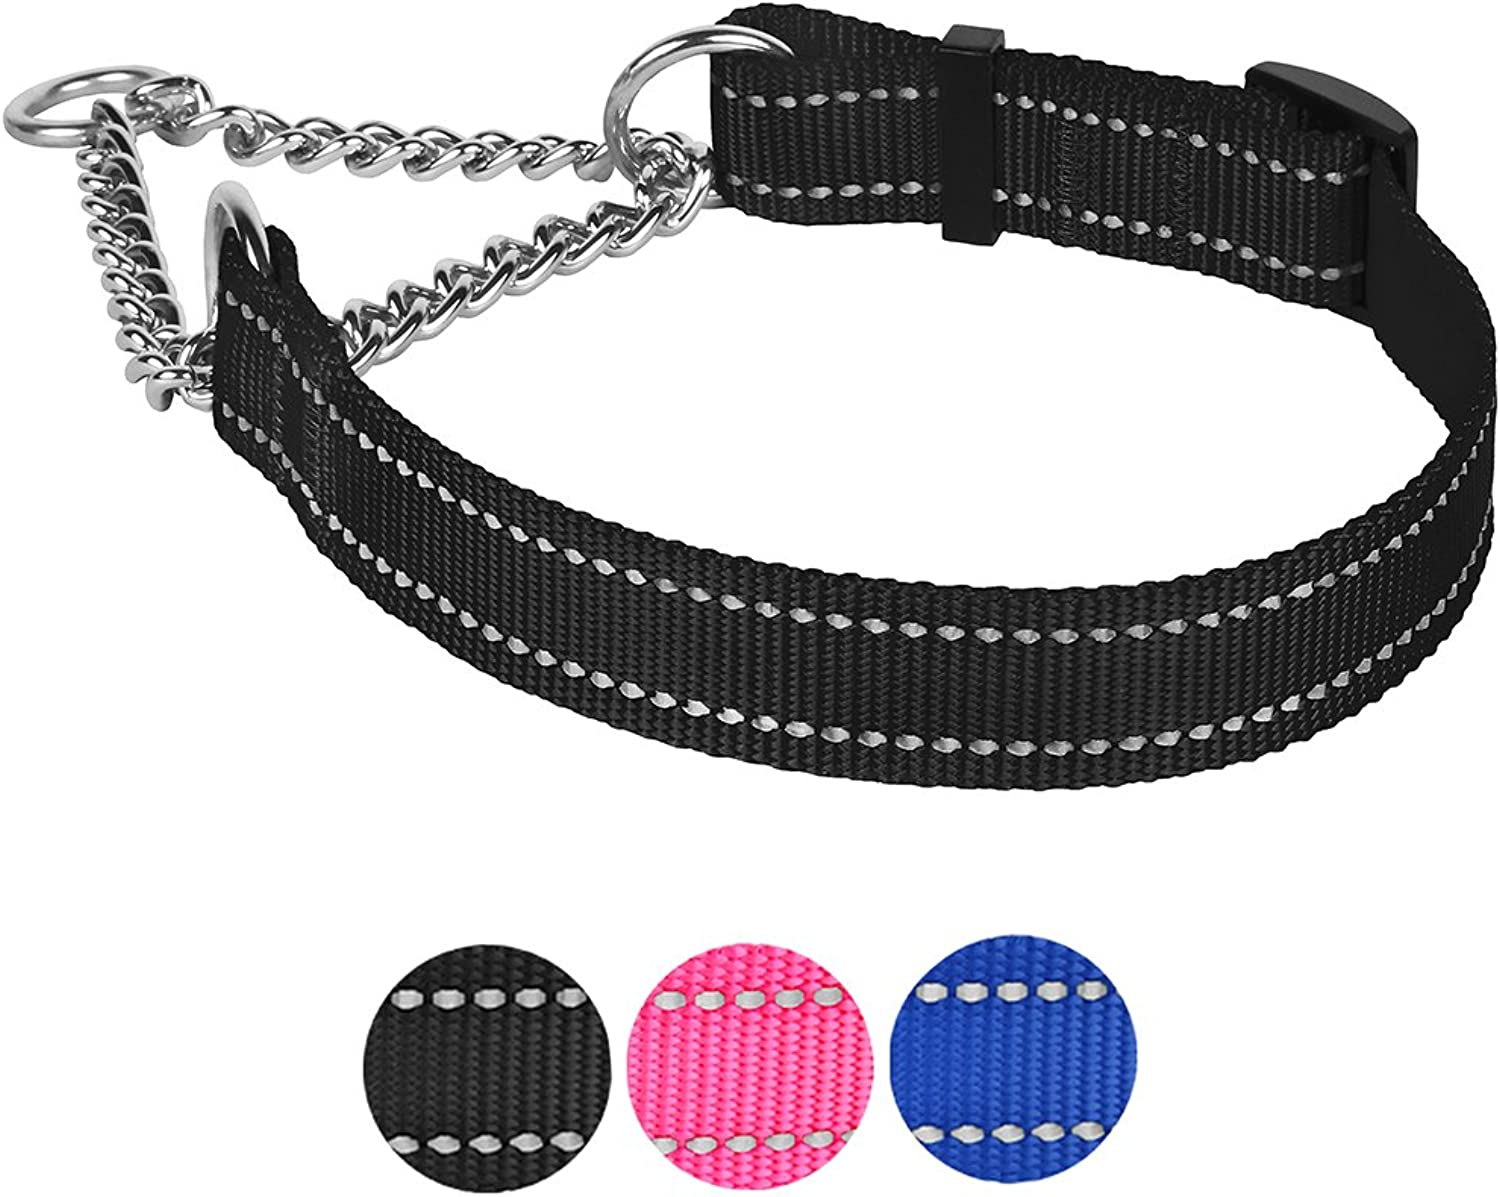 CollarDirect Martingale Dog Collar Training Adjustable Stainless Steel Chain Reflective Nylon Pet Choke Collars for Medium Large Dogs (M, Neck Fit 14 20 , Black)